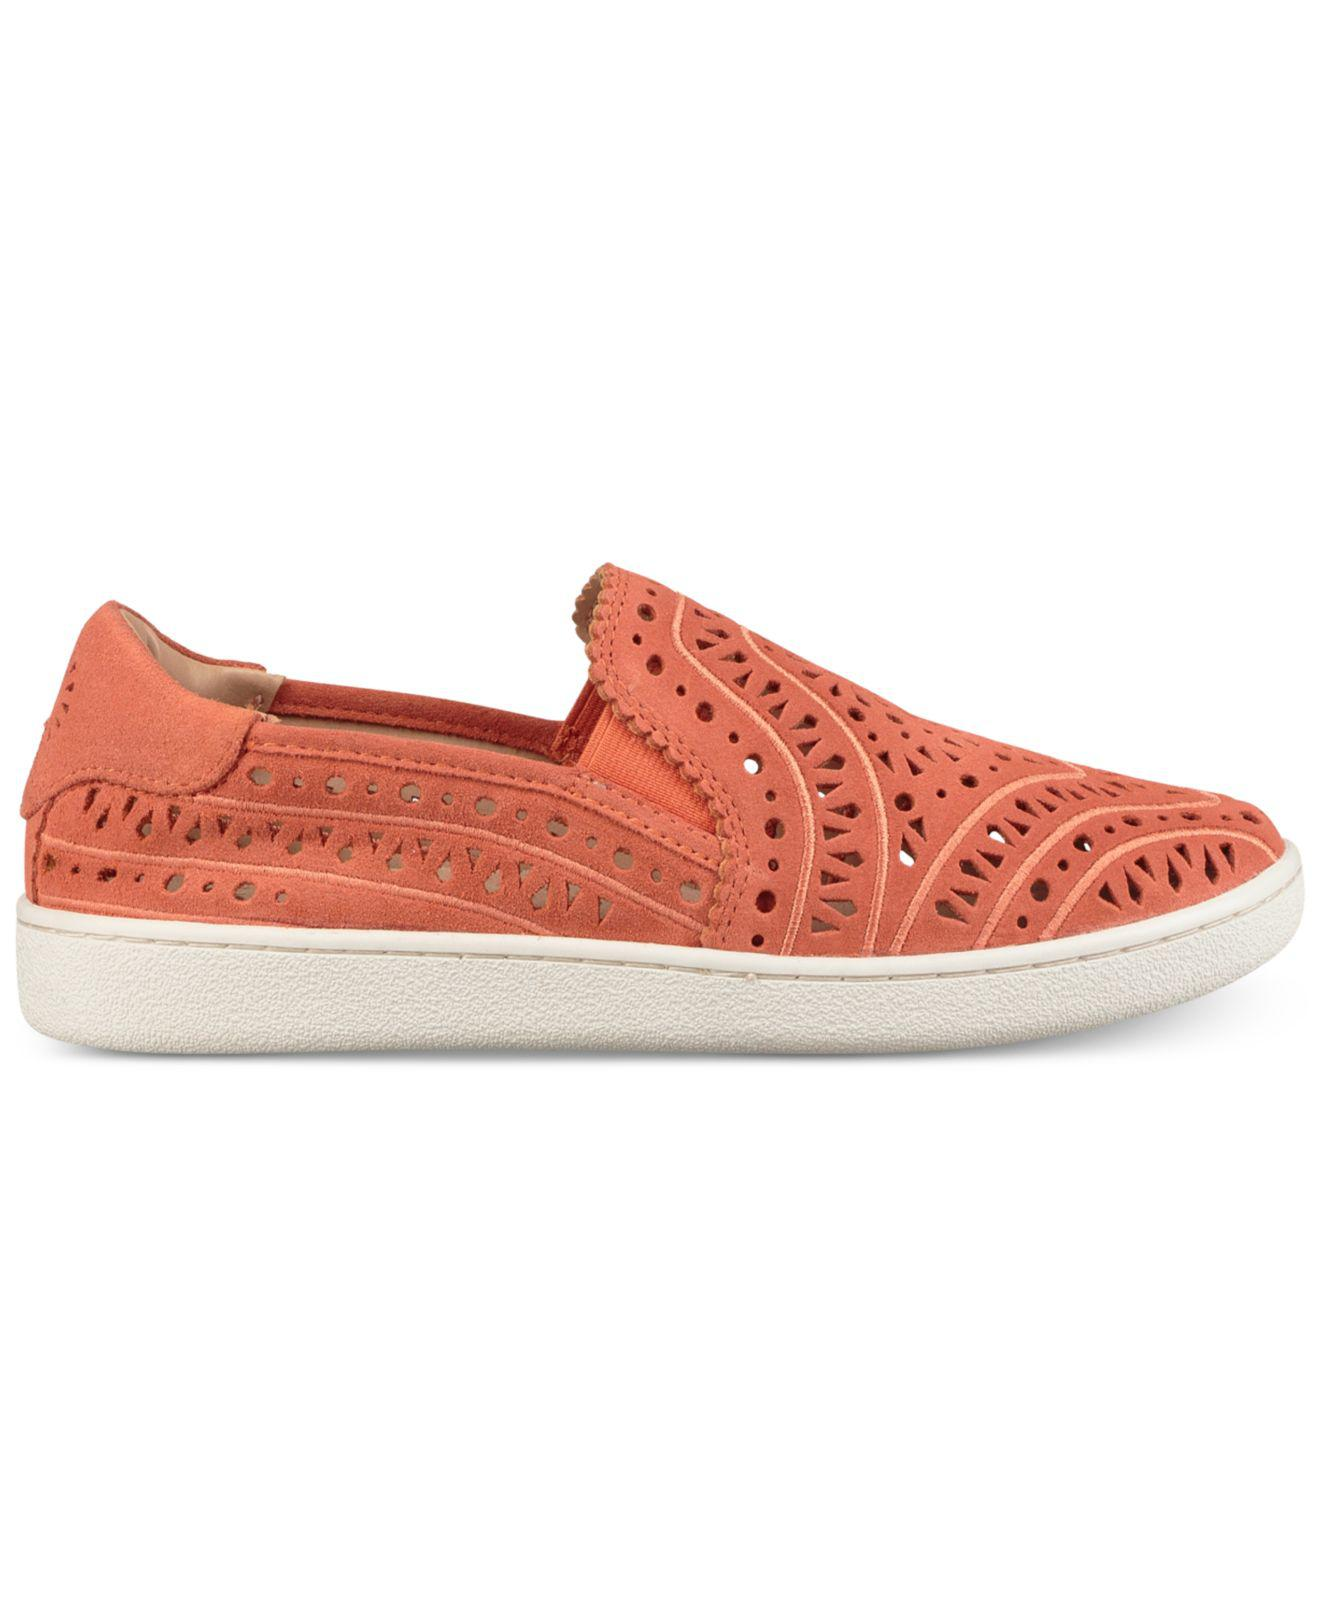 UGG Rubber Cas Perforated Slip-on